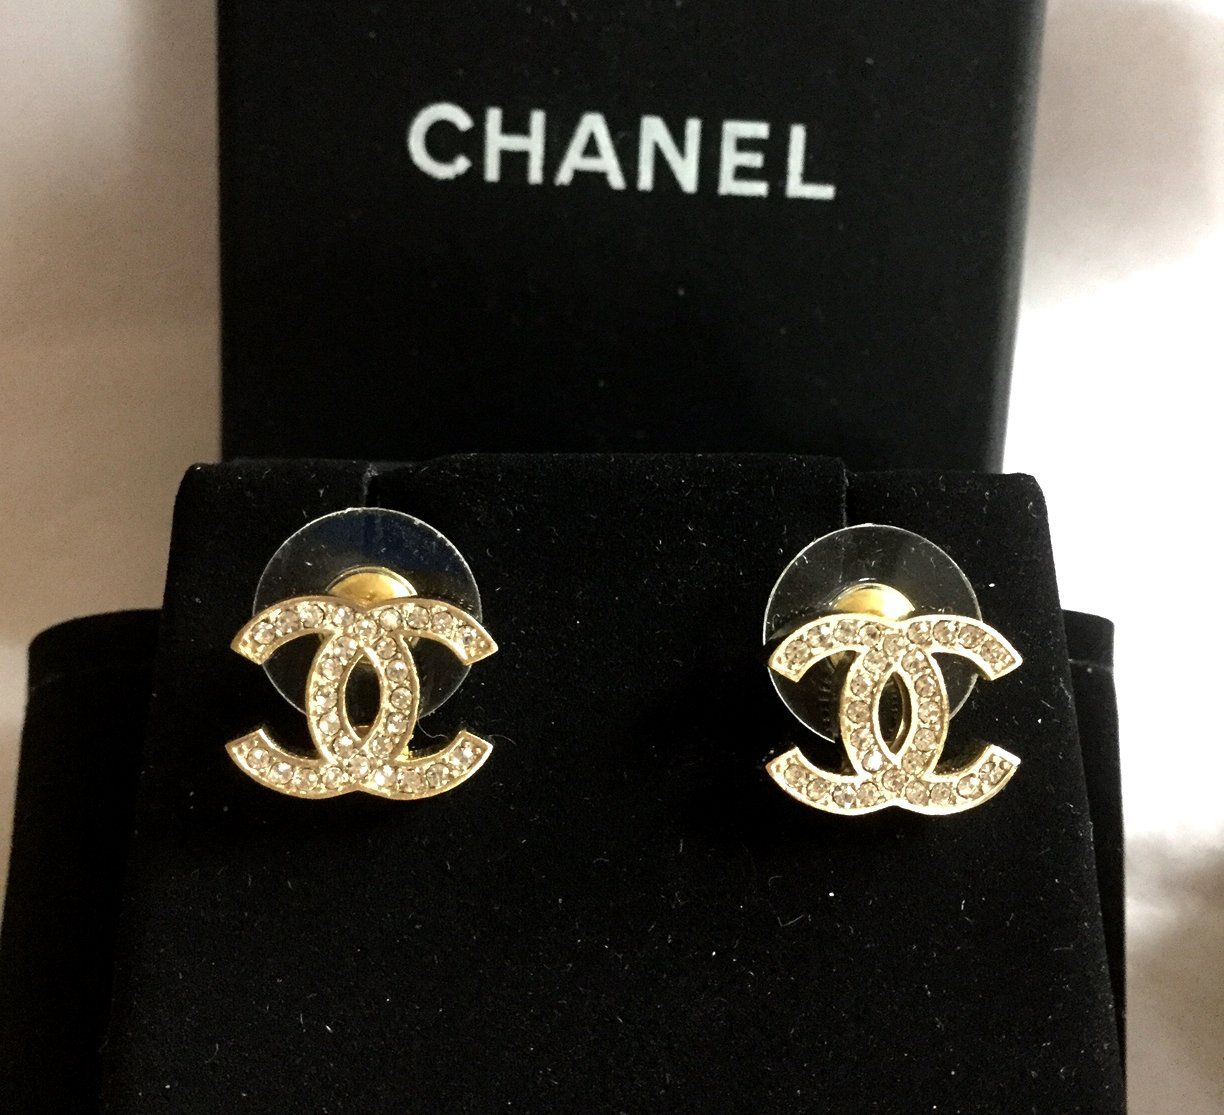 Chanel Clic Mini Cc Crystal Stud Gold Earrings Hallmark